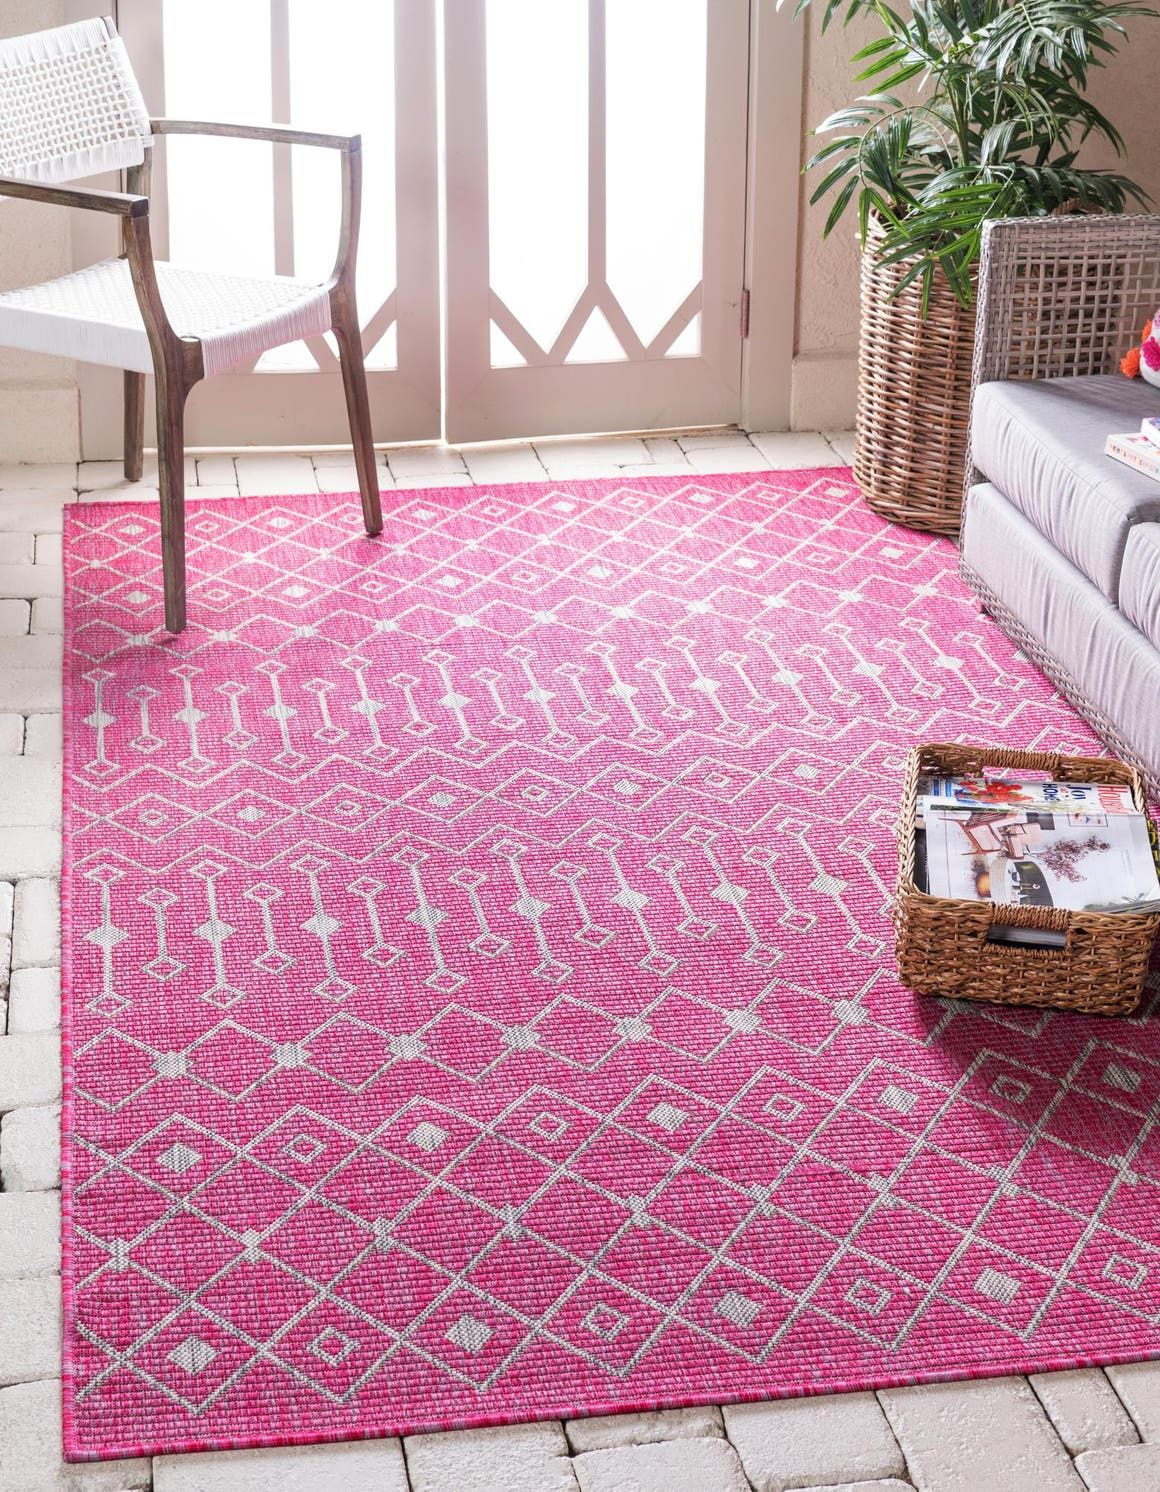 Outdoor Lattice Magenta 4x6 Area Rug Indoor Outdoor Rug In 2020 Outdoor Trellis Indoor Outdoor Area Rugs Trellis Rug